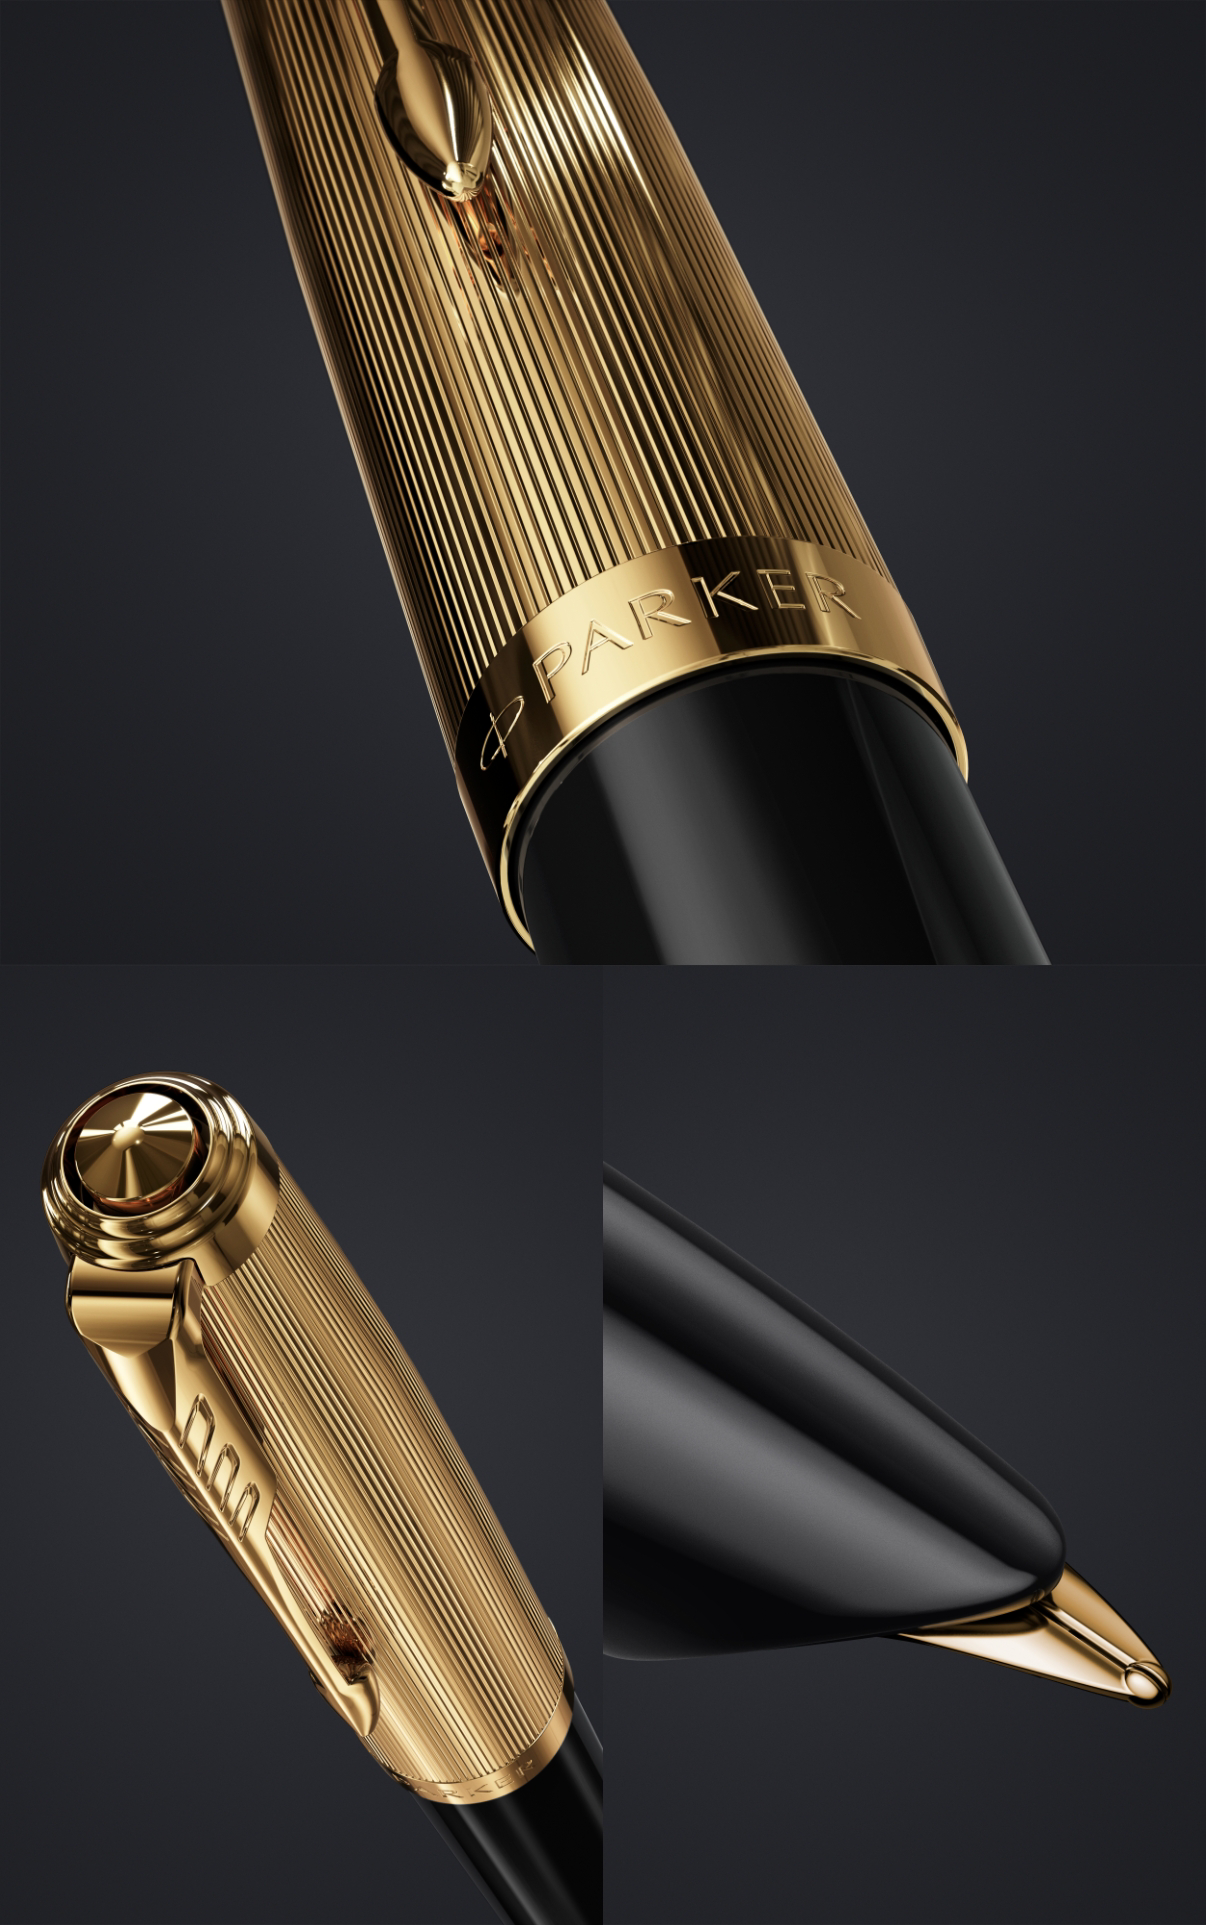 Deluxe Black : The iconic hooded nib, stainless-steel, the barrel cap of Parker 51